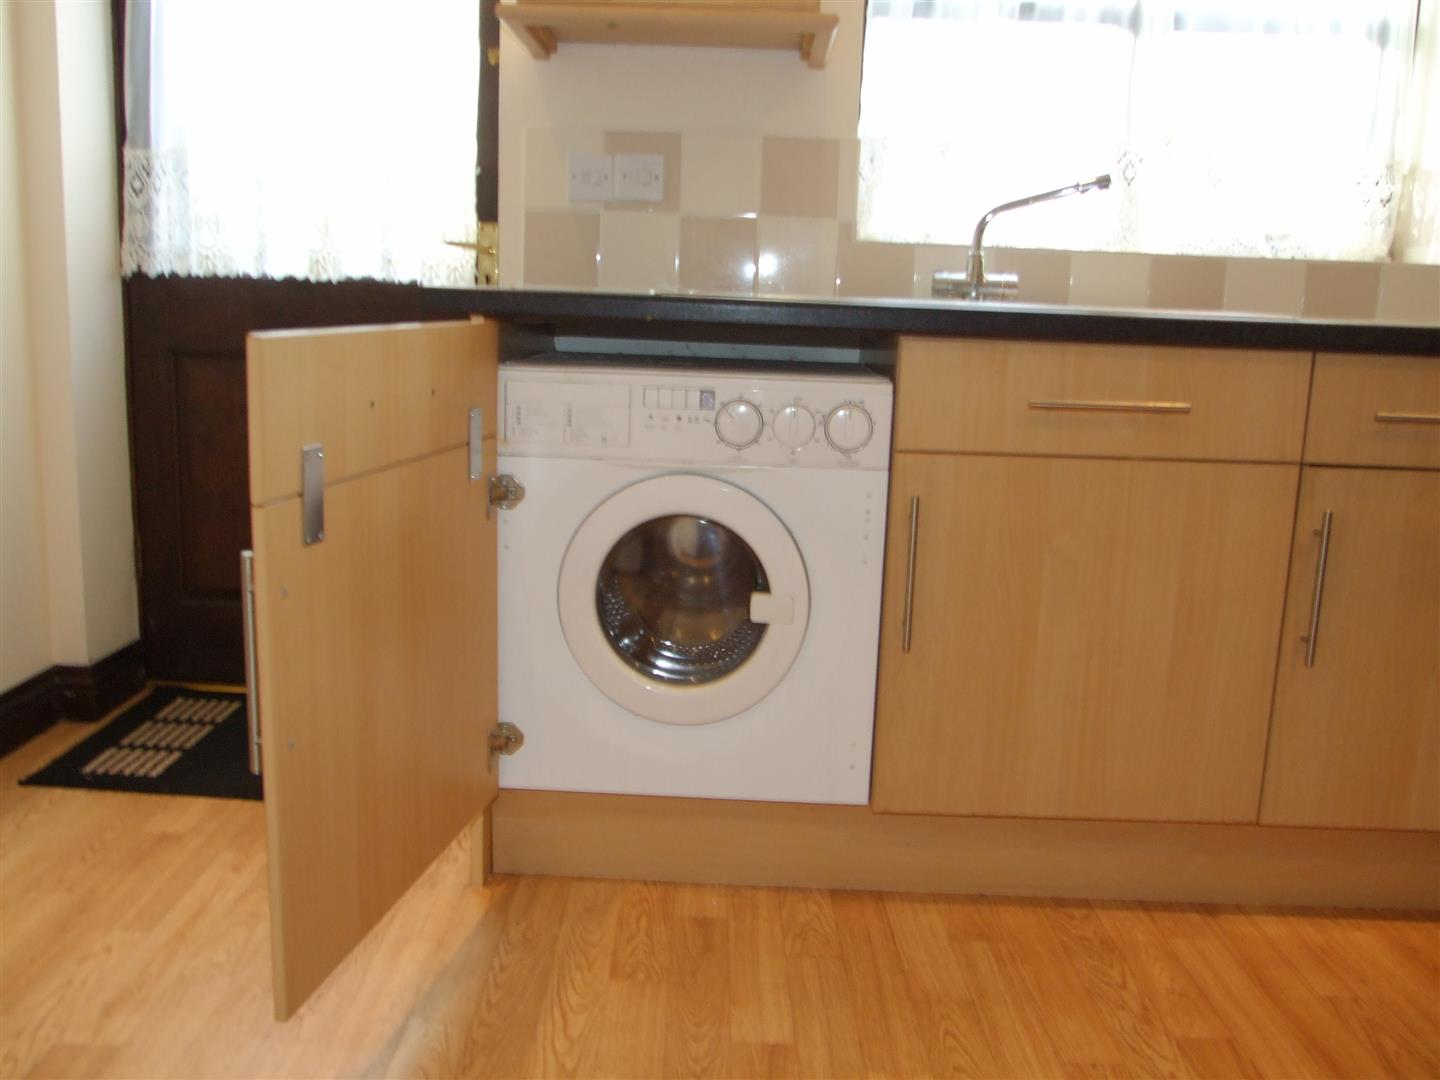 3 bed house to rent in Sutton Bridge Spalding, PE12 9UF  - Property Image 4